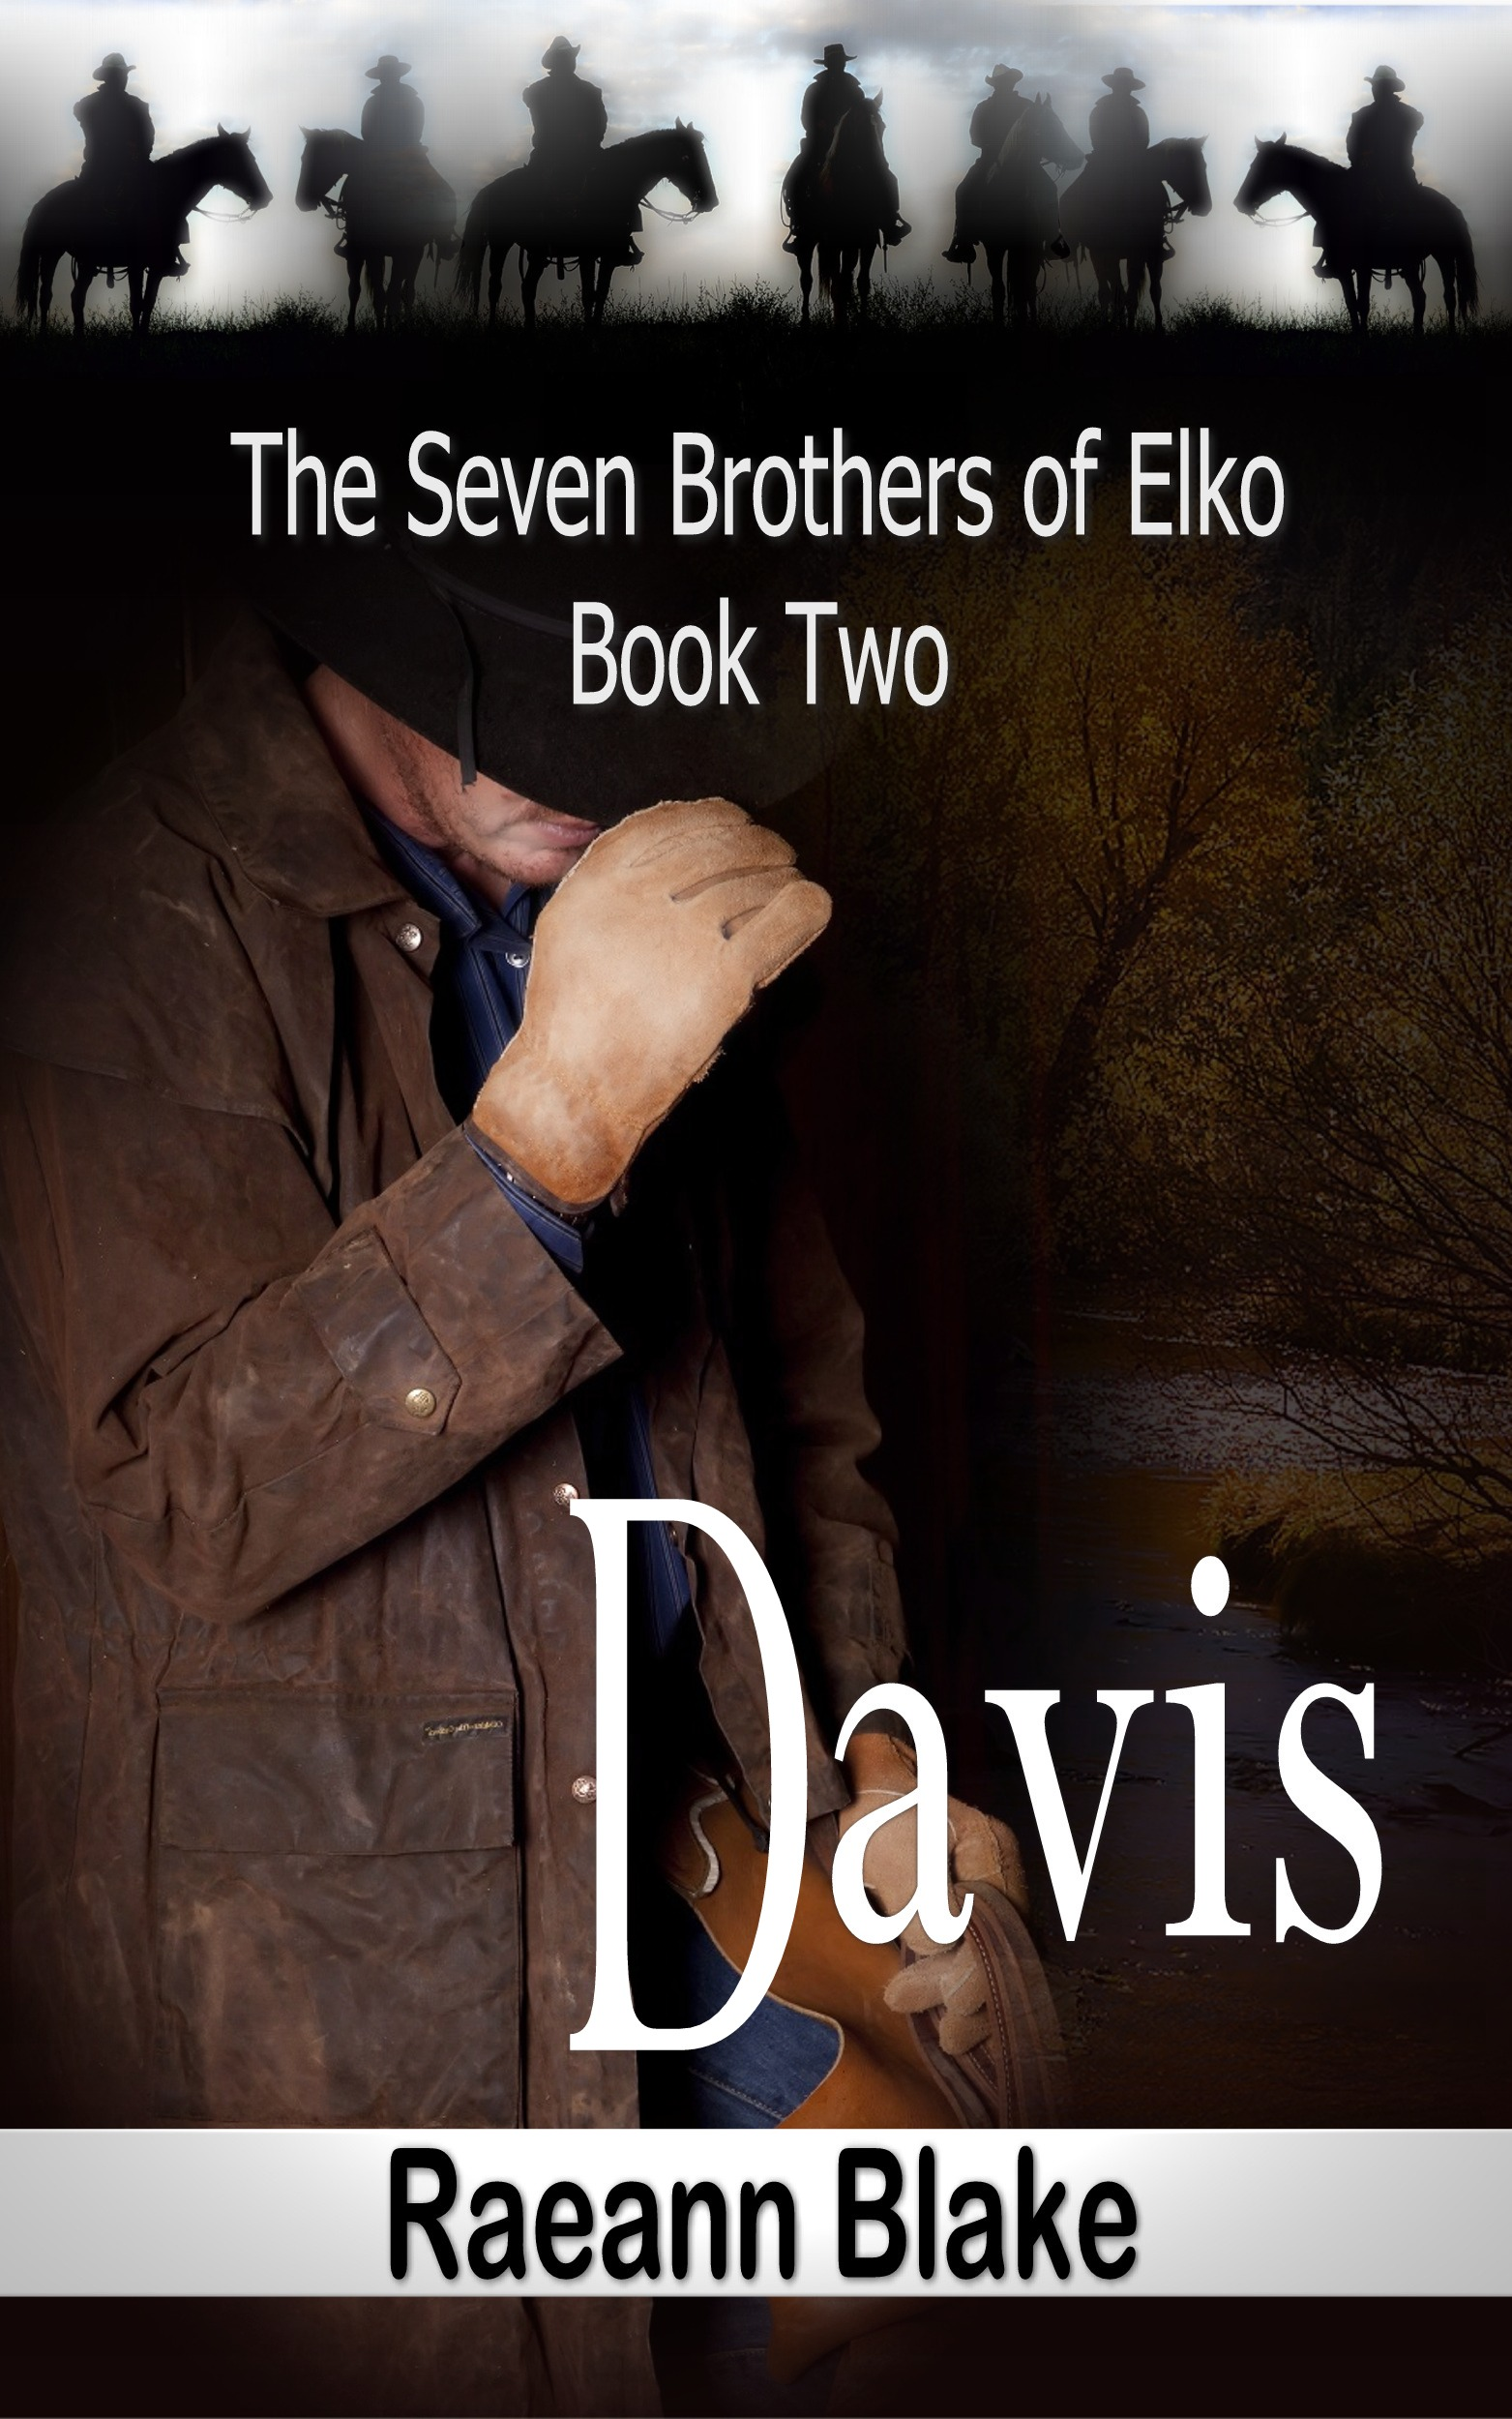 The Seven Brothers of Elko - Davis